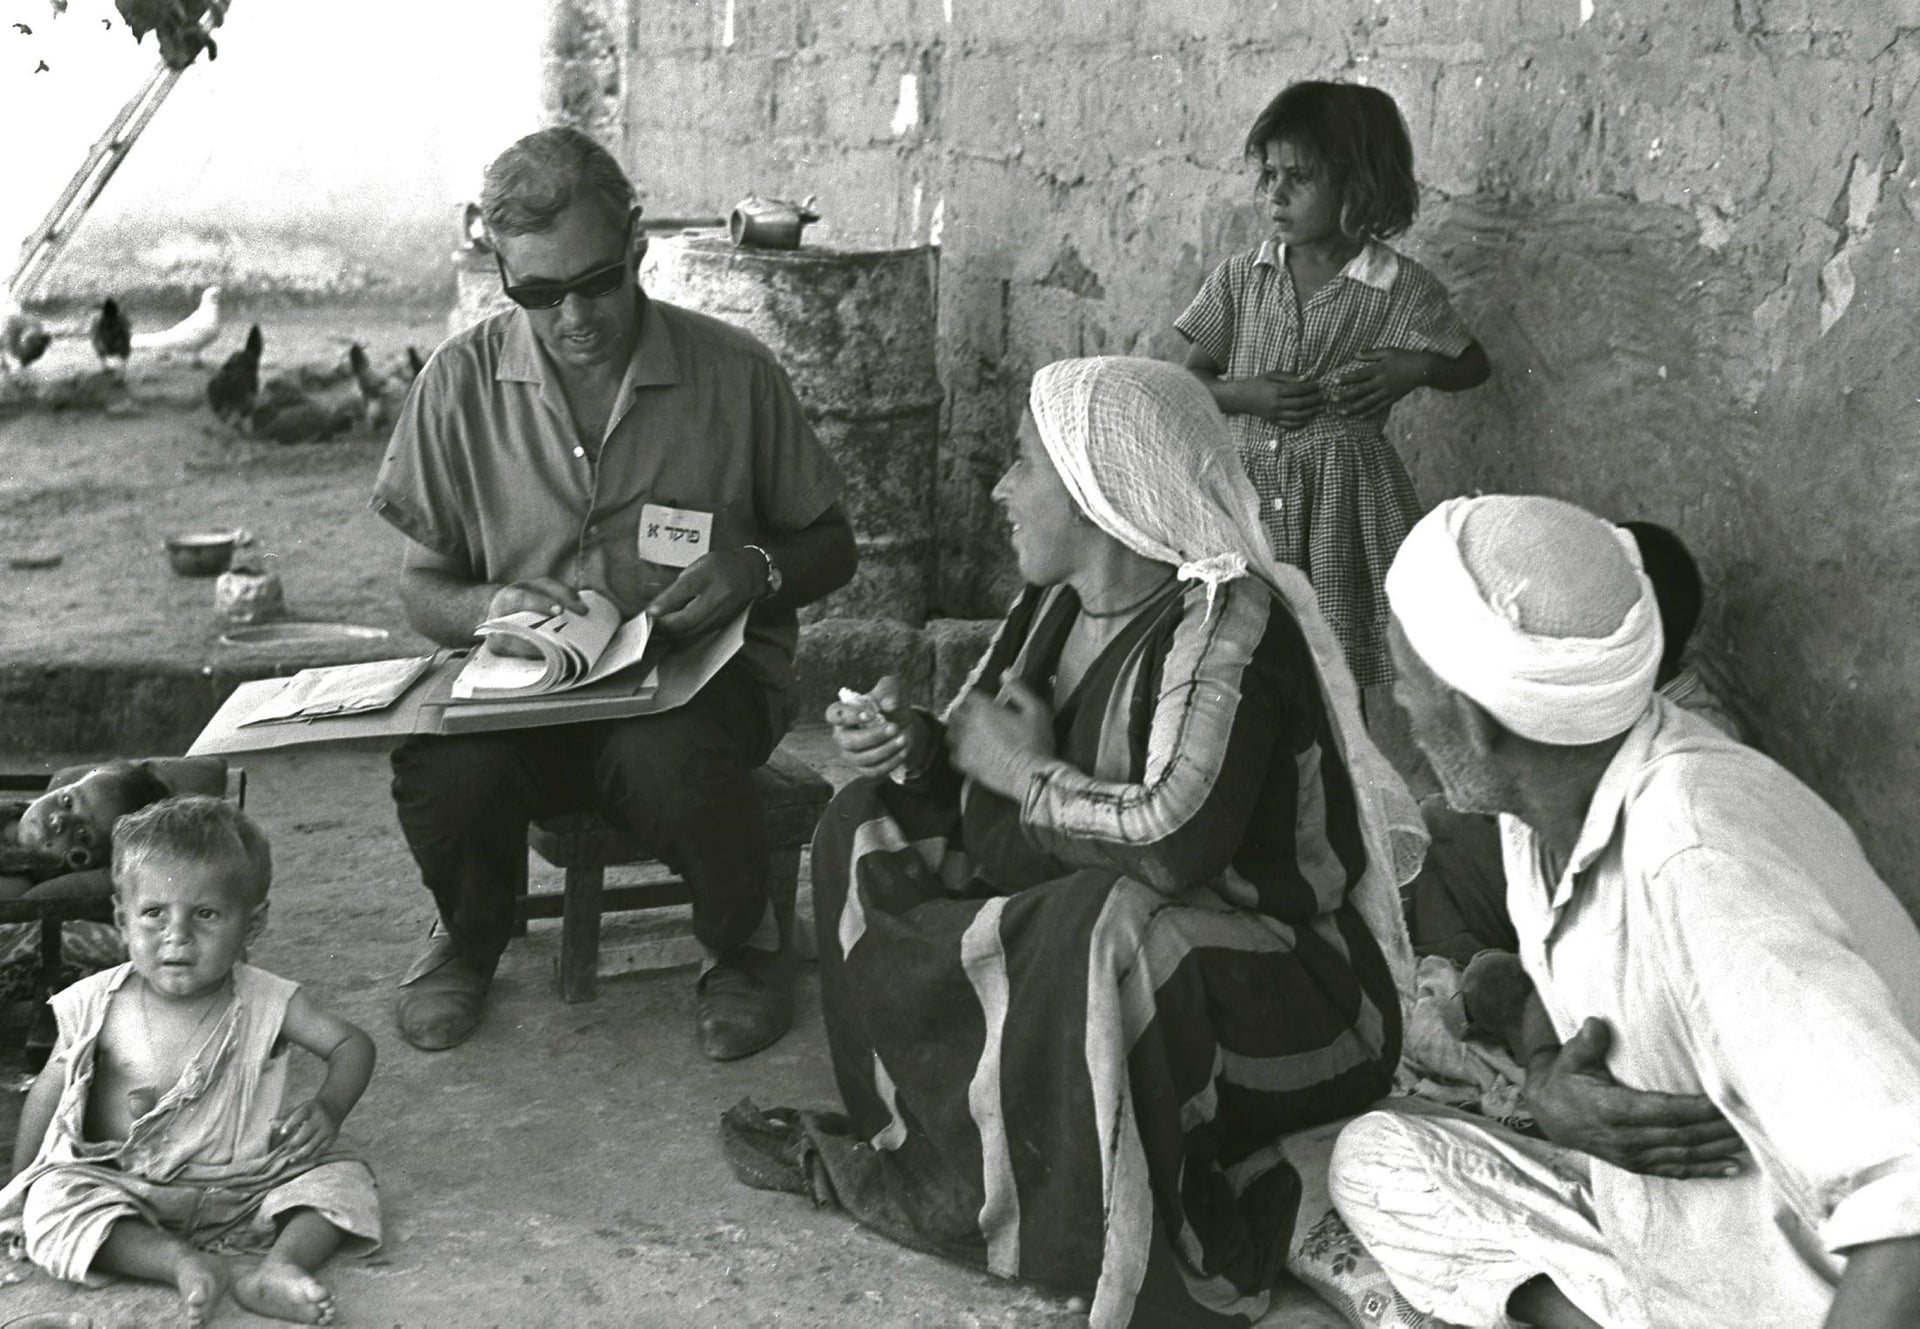 An Israeli census taker interviewing a Palestinian family in Gaza City, September 1967.